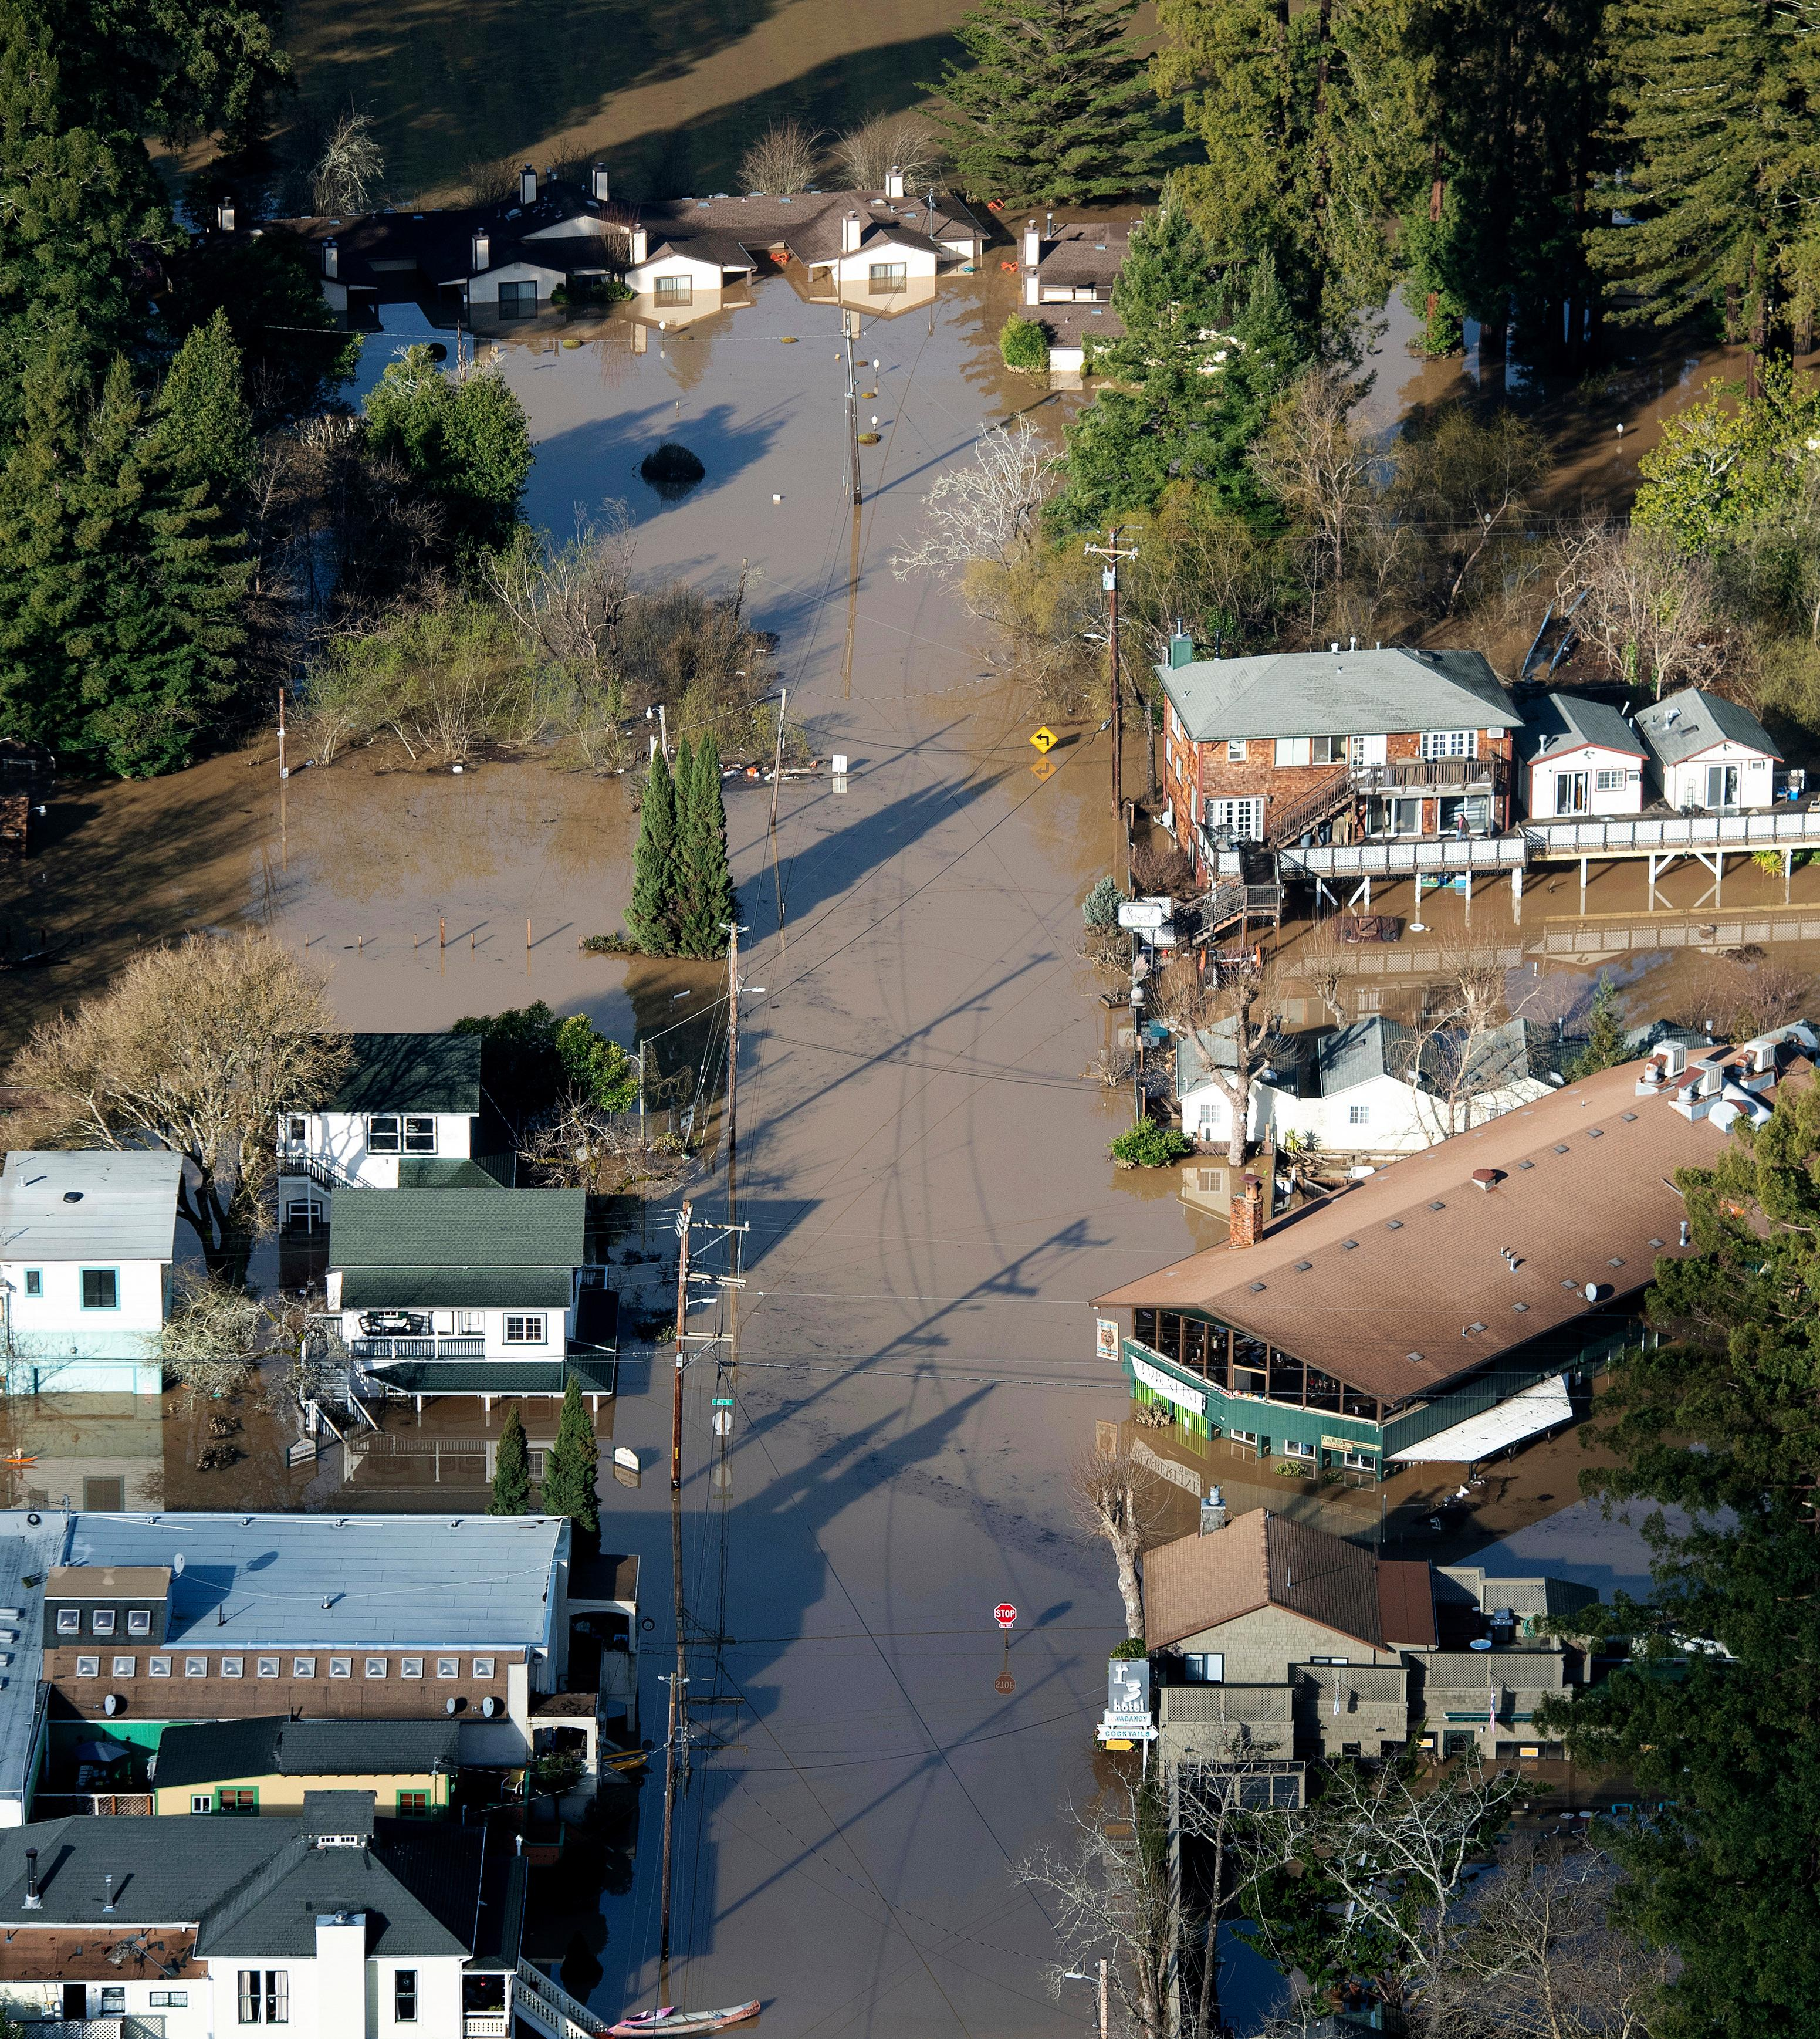 Flood waters from the Russian River partially submerge properties in Guerneville, Calif., on Thursday, Feb. 28, 2019. The river in the wine country north of San Francisco reached its highest level in 25 years Wednesday night and Sonoma County officials say it won't return to its banks until late Thursday.   (AP Photo/Josh Edelson)